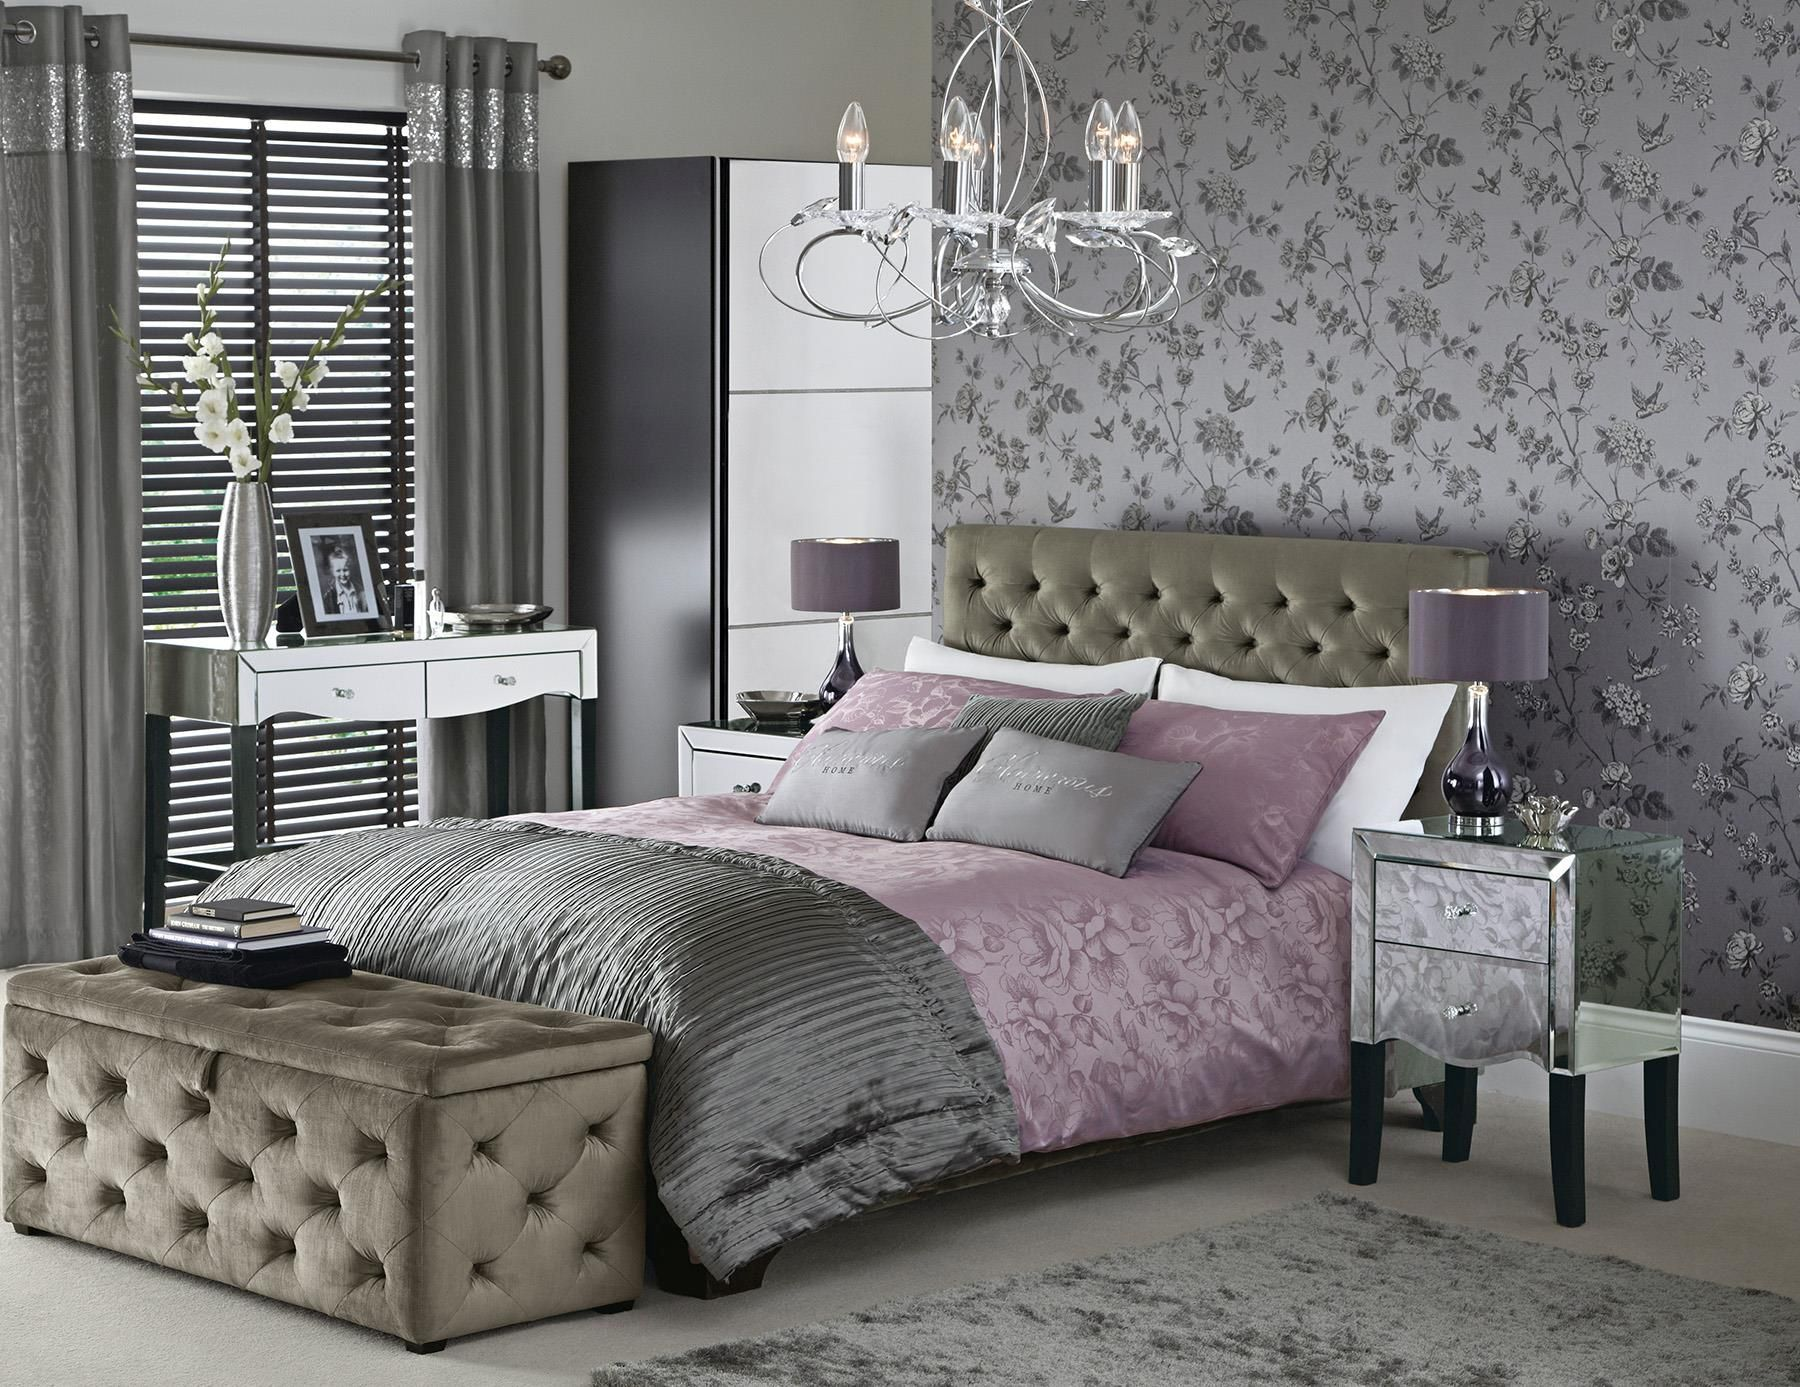 Next Mirrored Bedroom Furniture Gatsby Bedroom Collection From Next Home Home Sweet Home